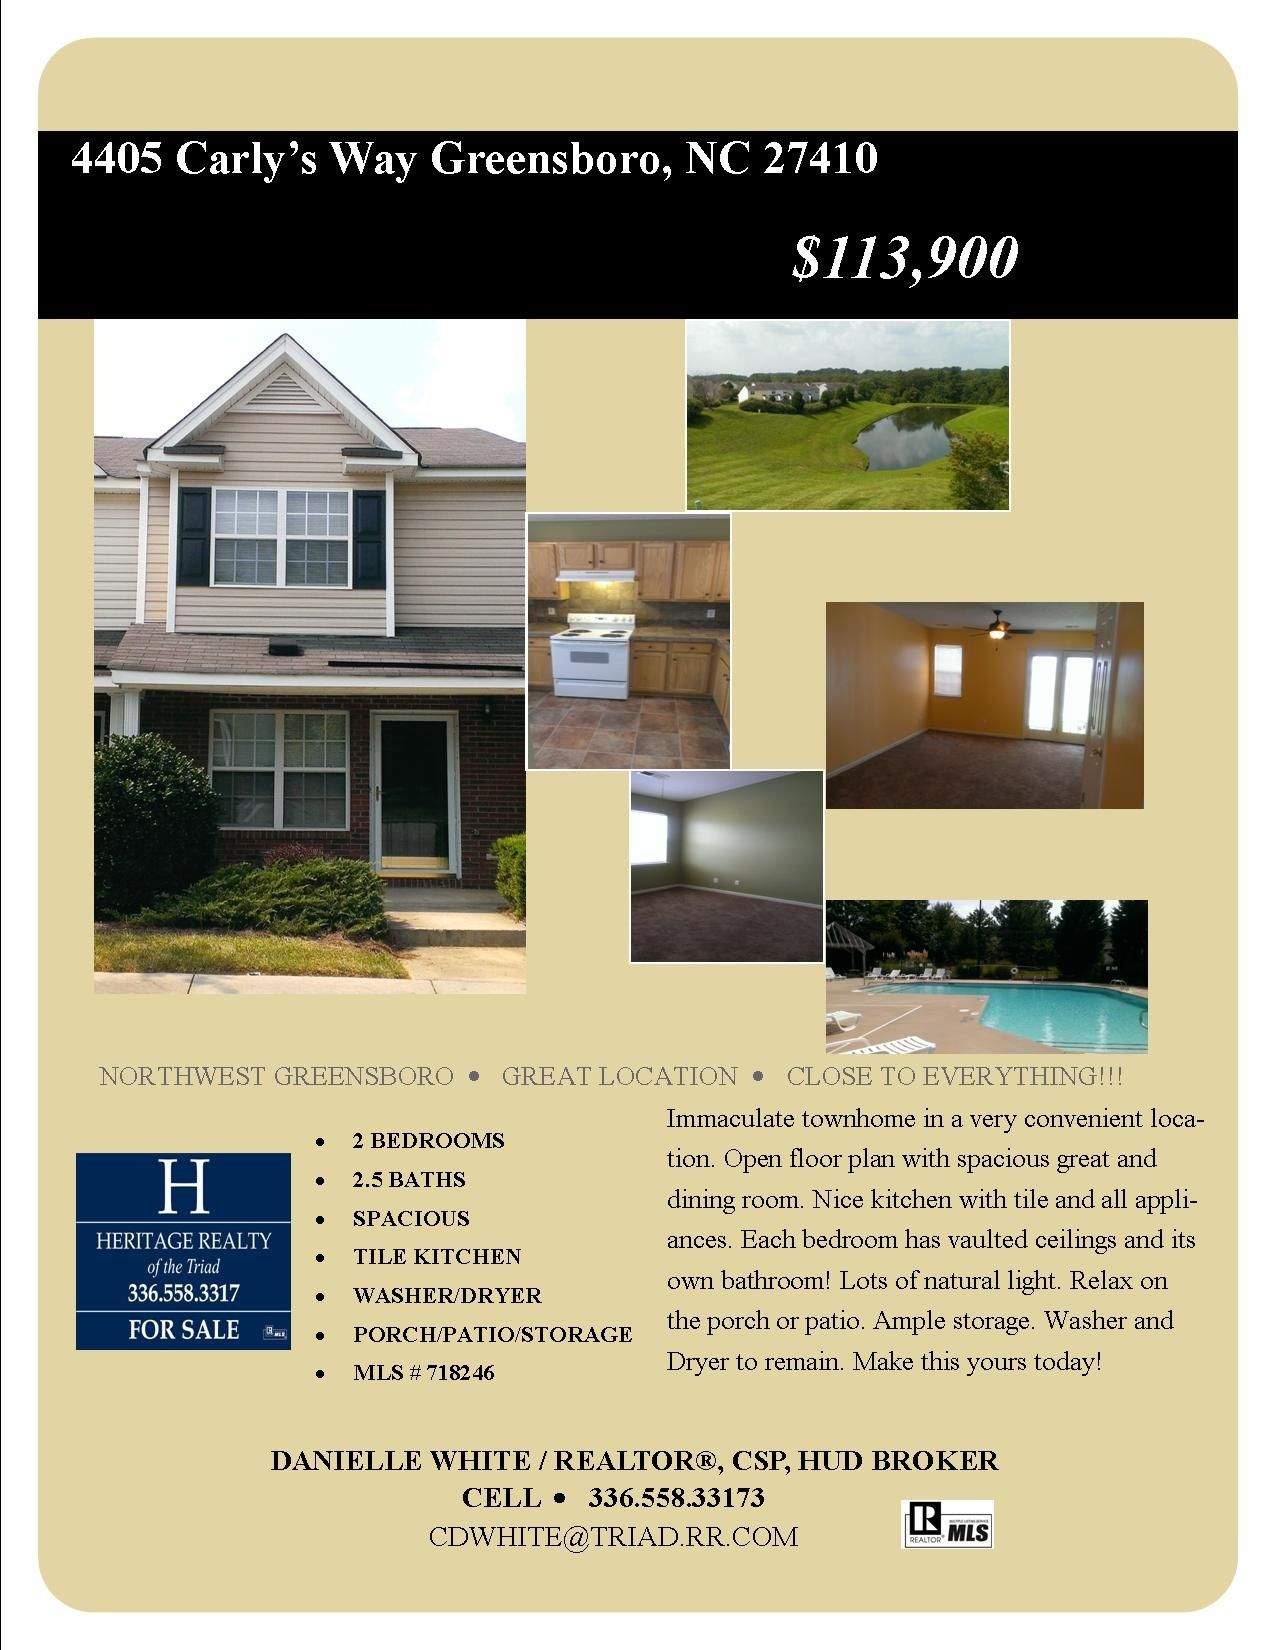 Greensboro nc for sale open floor plan townhouse cool